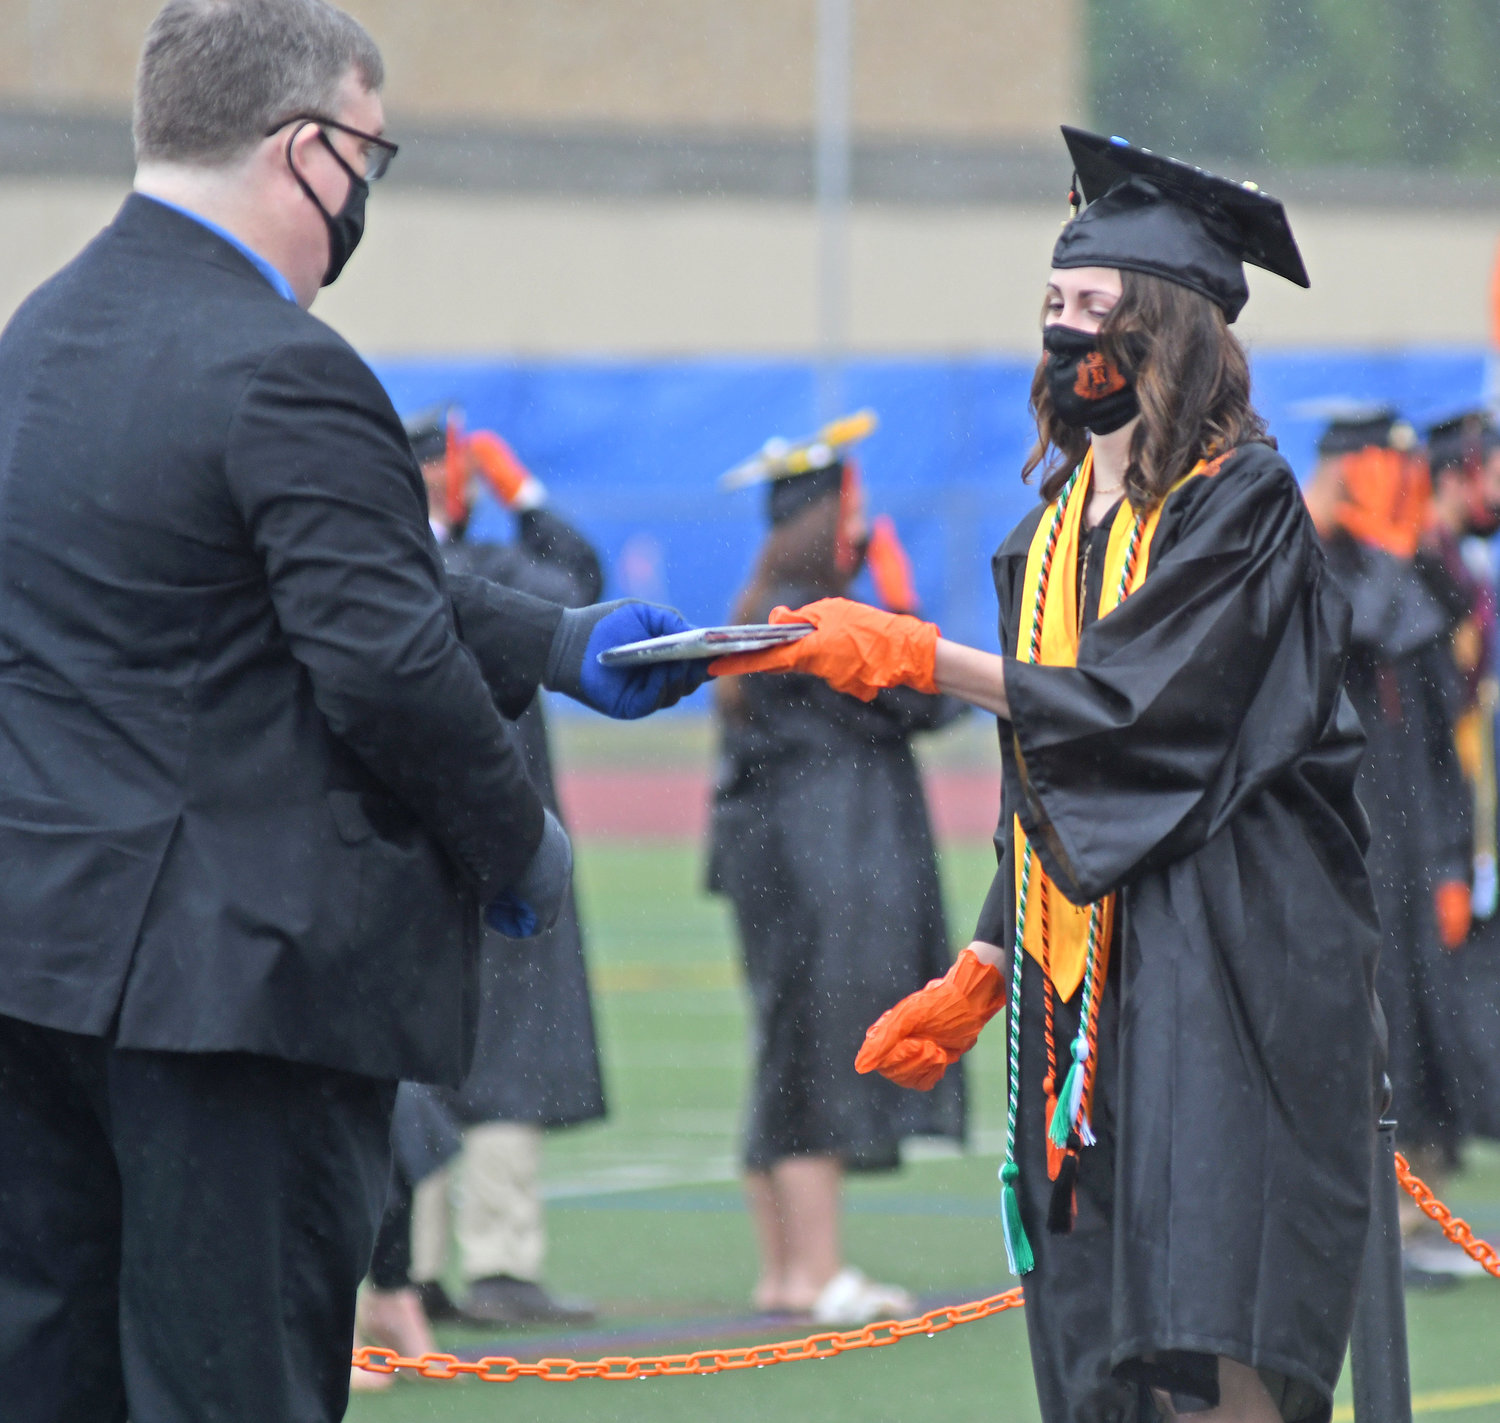 DIPLOMA IN HAND — Abigail Minicozzi receives her diploma during a mini-commencement ceremony in June.